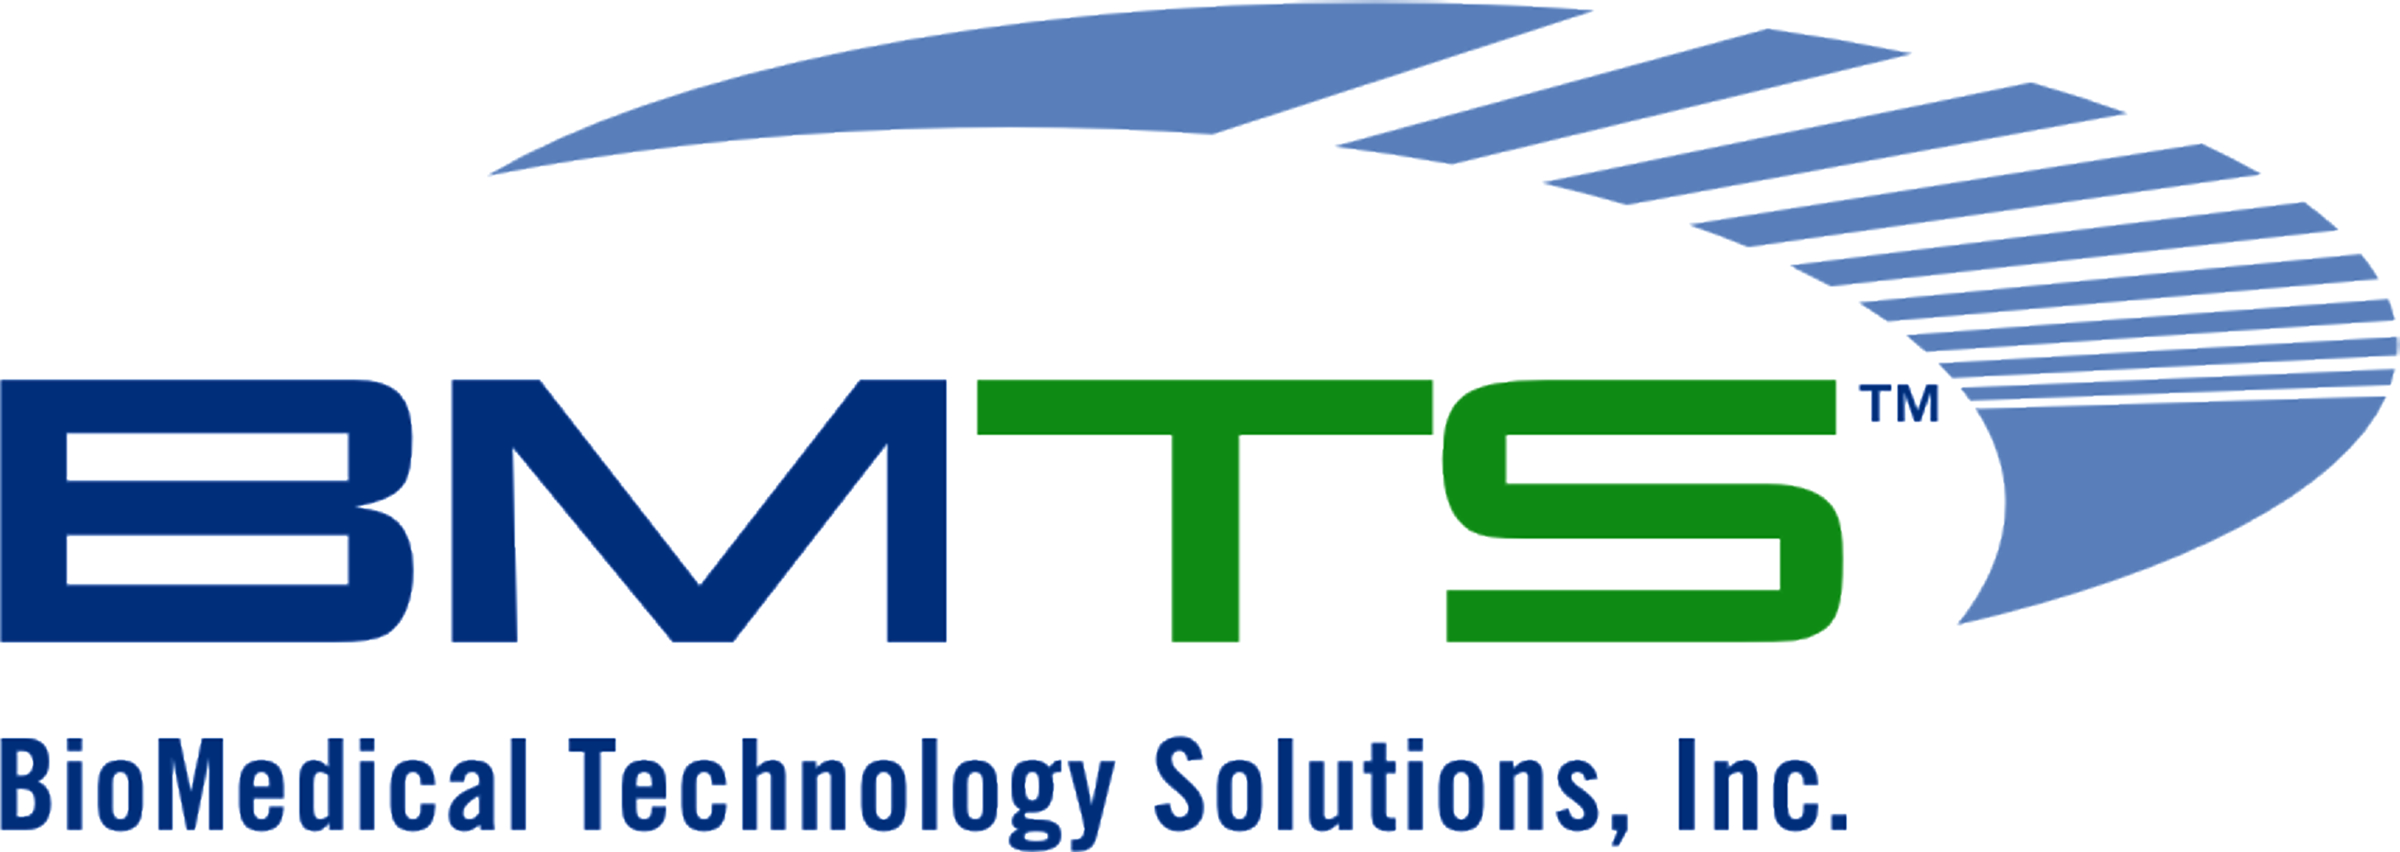 BioMedical Technology Solutions Holdings, Inc. (OTC BB: BMTL) CEO Interview